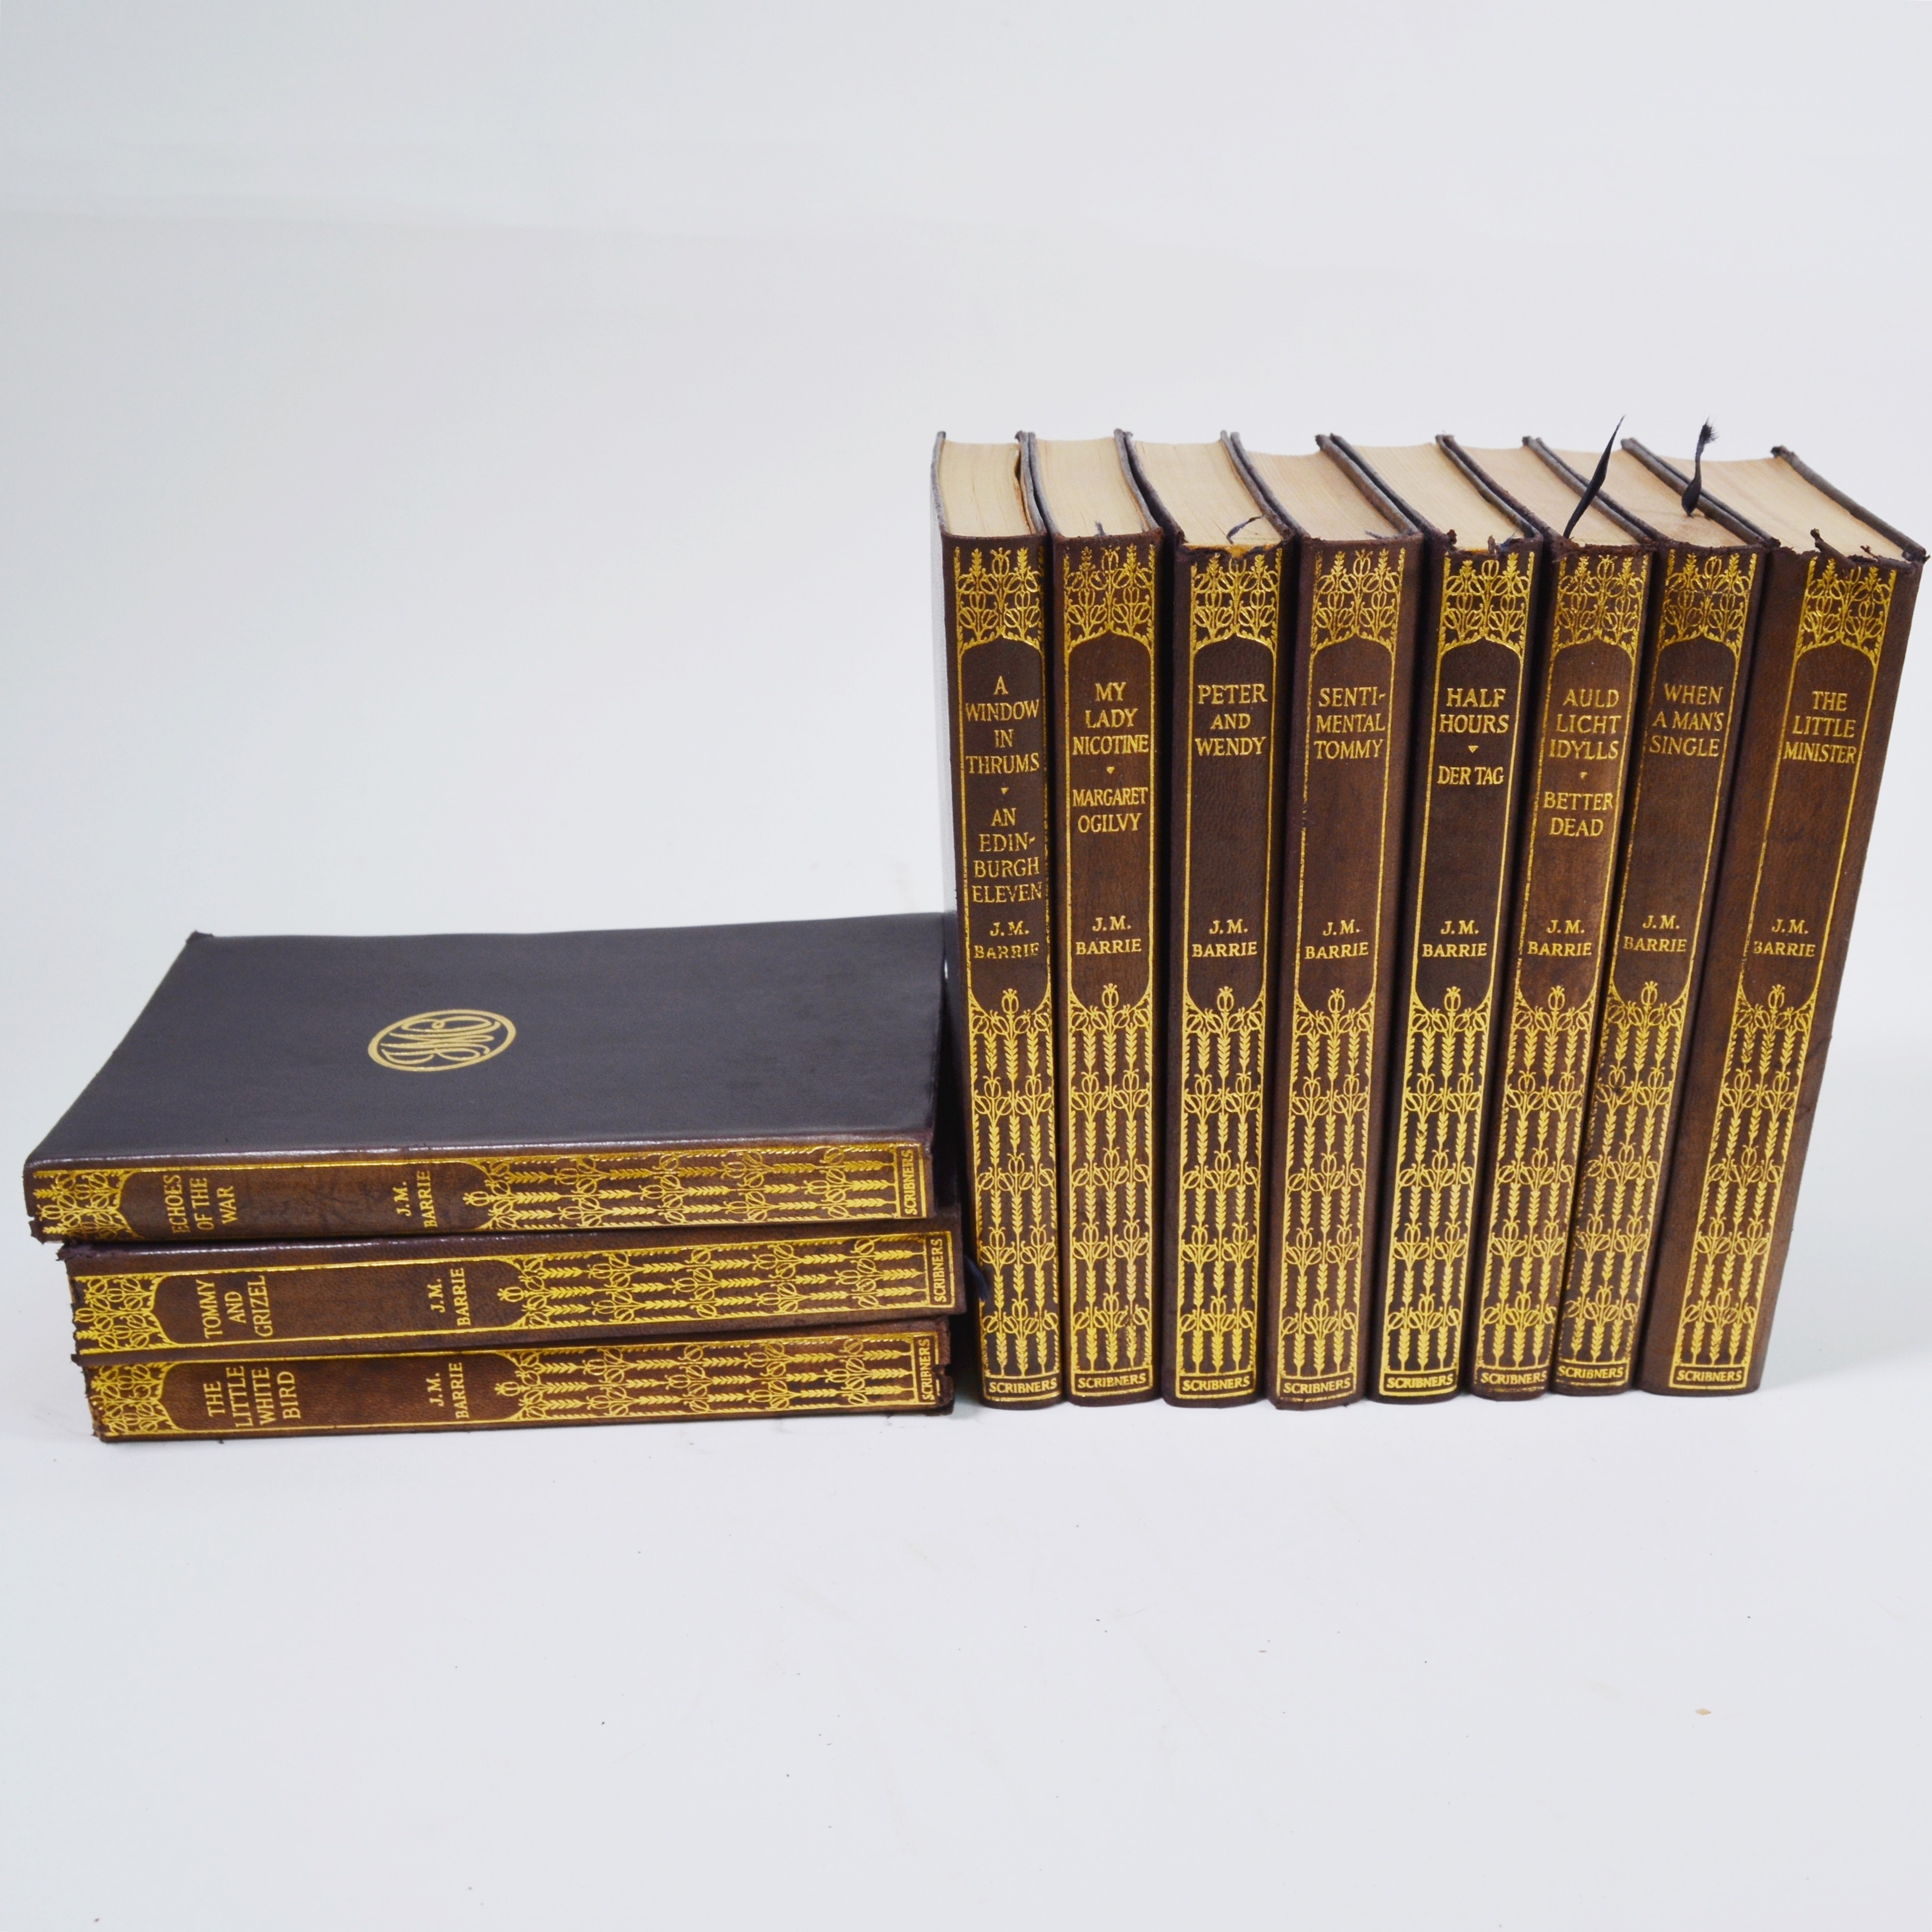 The Works of J.M. Barrie Eleven Volume Set